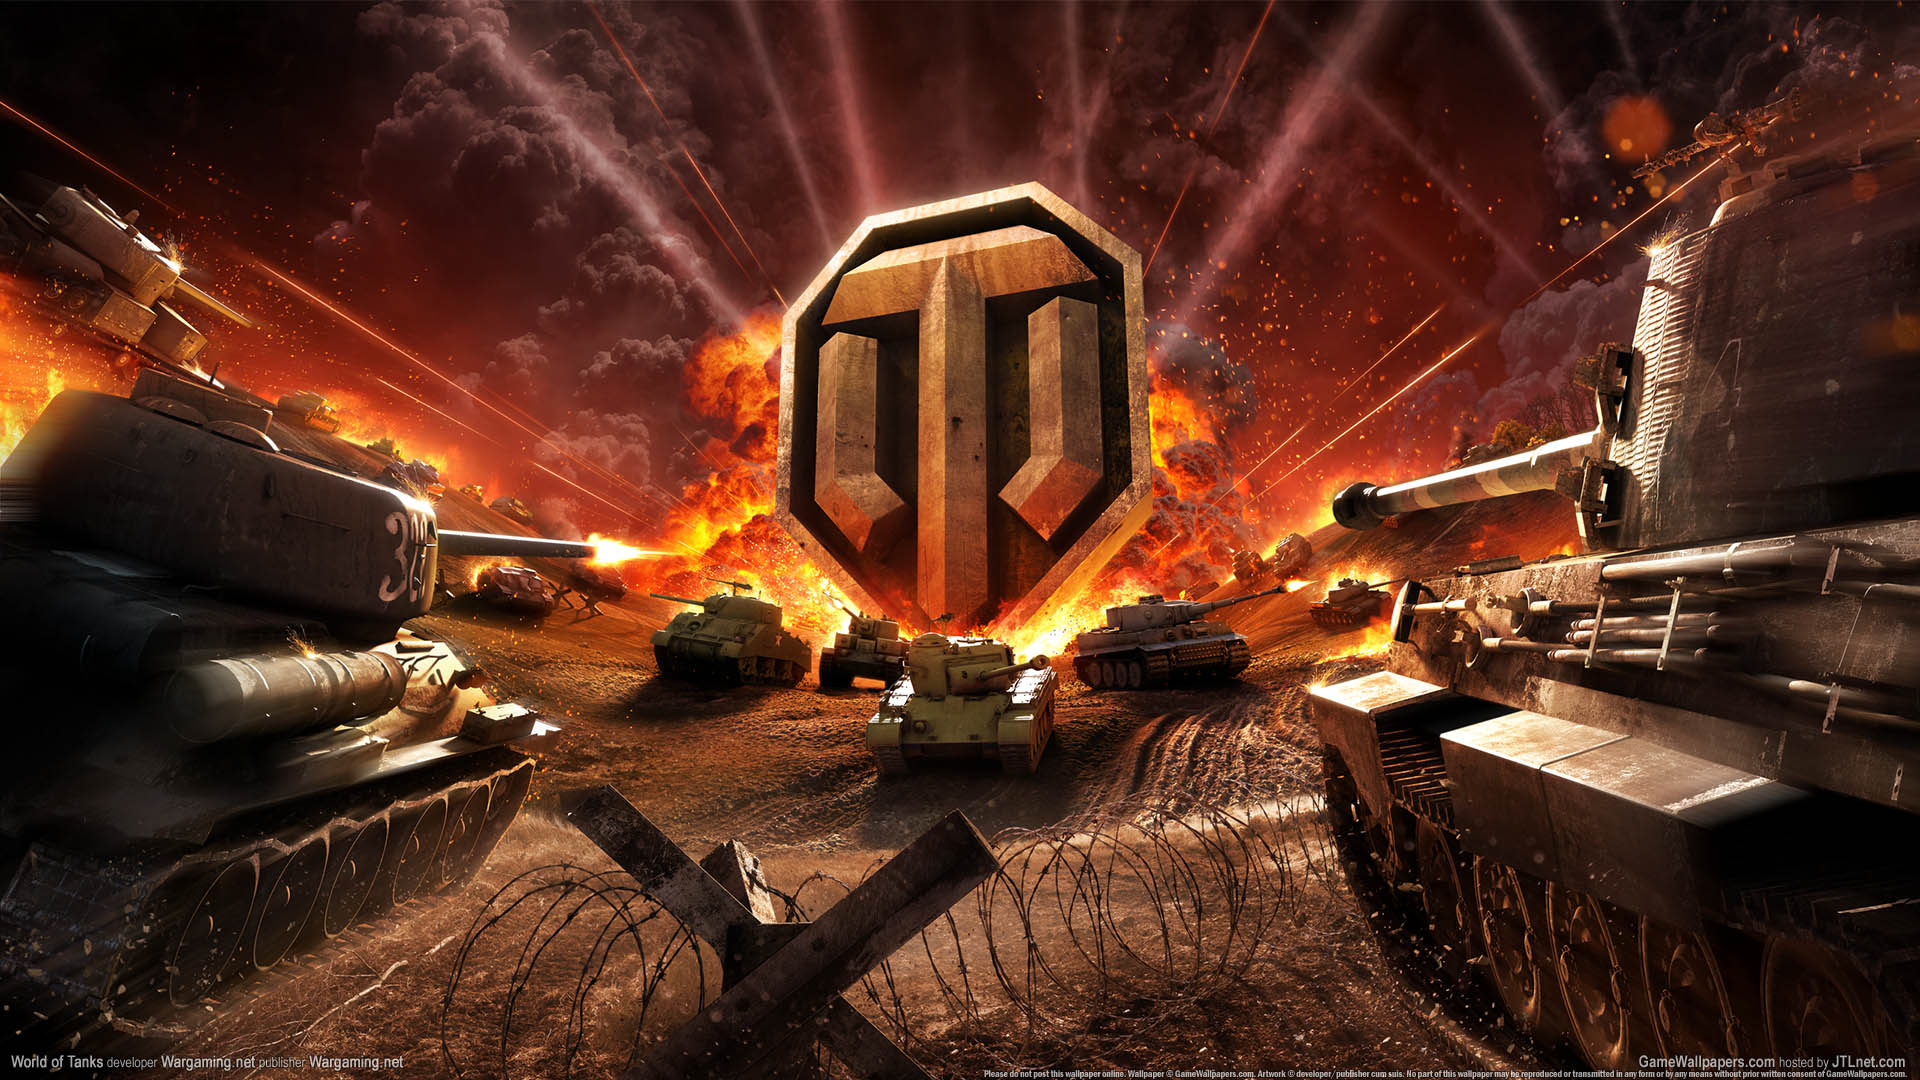 World of Tanks wallpaper 02 1920x1080